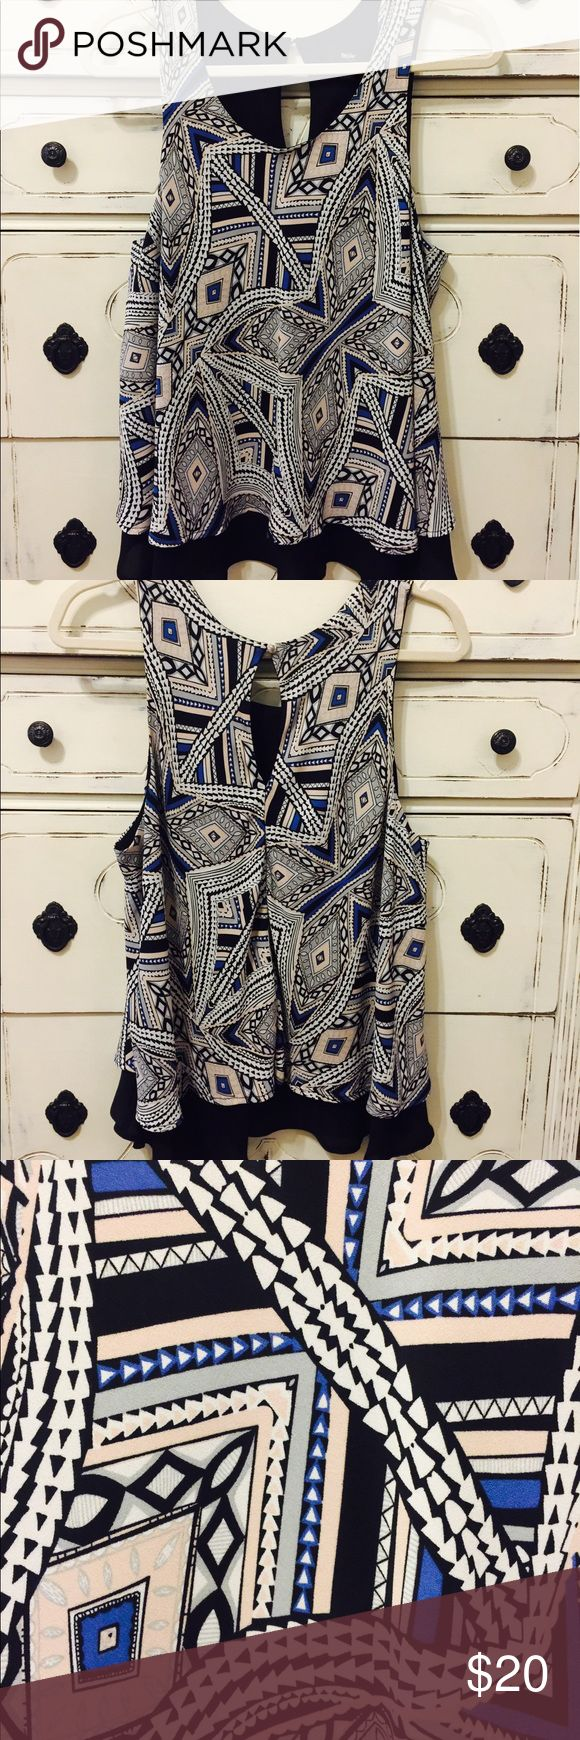 Multicolored Aztec Blouse (L) Multicolored Aztec Double Layered Tank Blouse. Black, light gray, cobalt blue, blush pink and white. 100% Polyester. Machine wash cold, tumble dry low. Like new. Worn only a few times. Mossimo Supply Co Tops Blouses